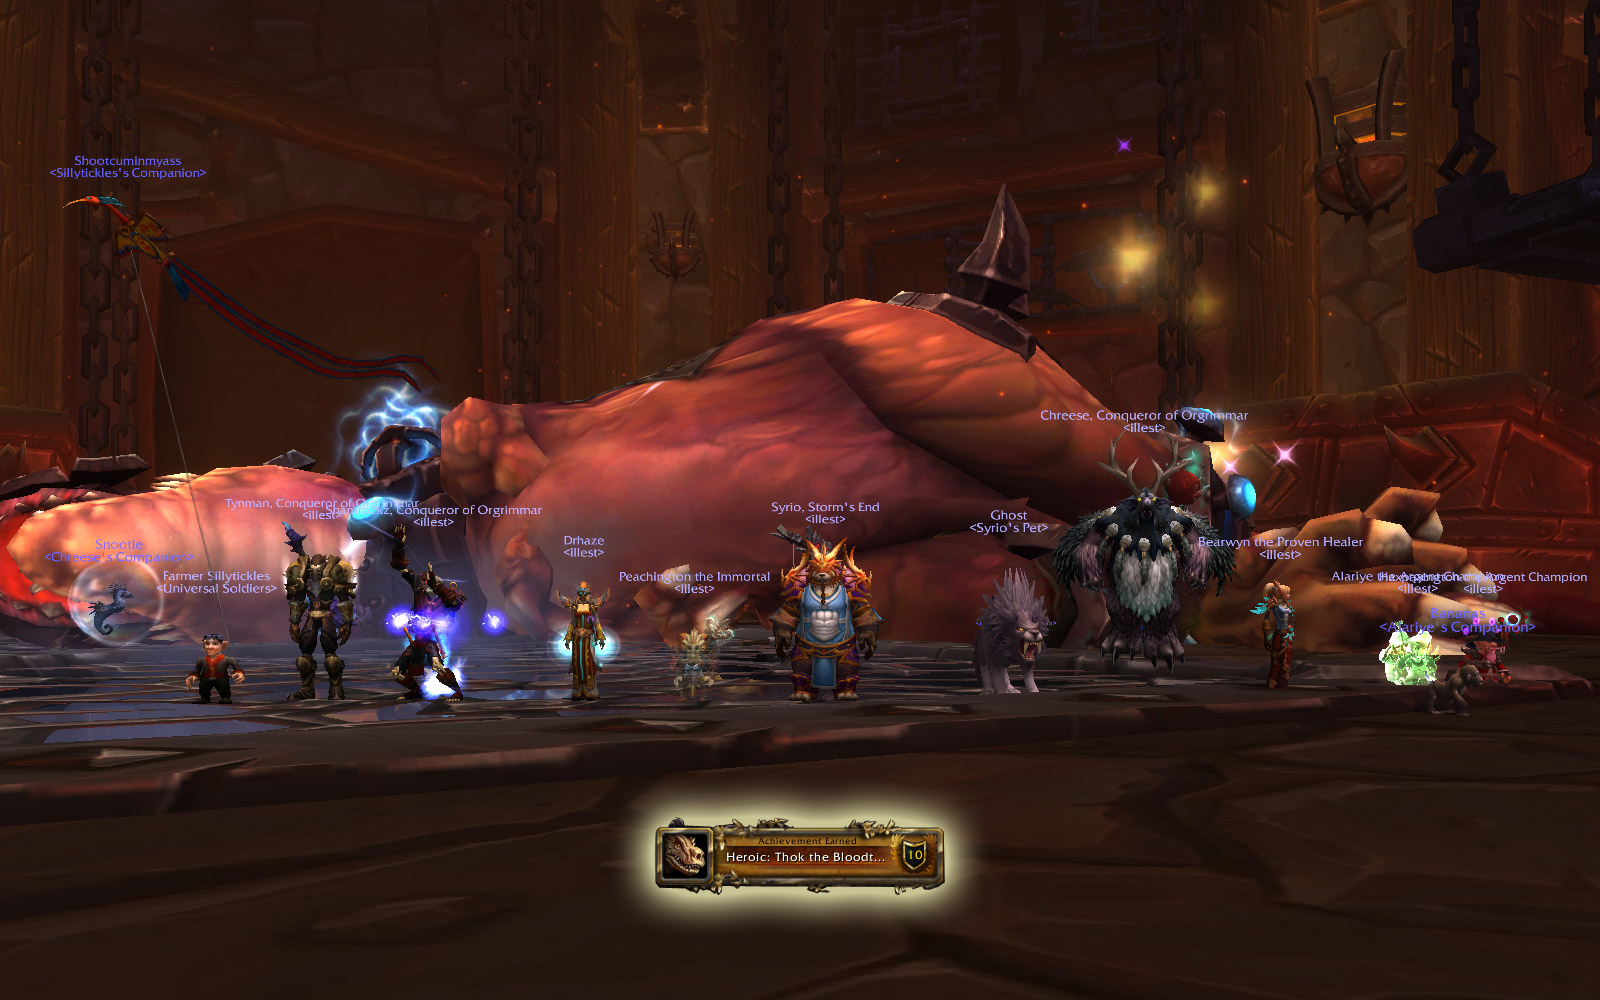 Heroic Siege of Orgrimmar: Thok the Bloodthirsty